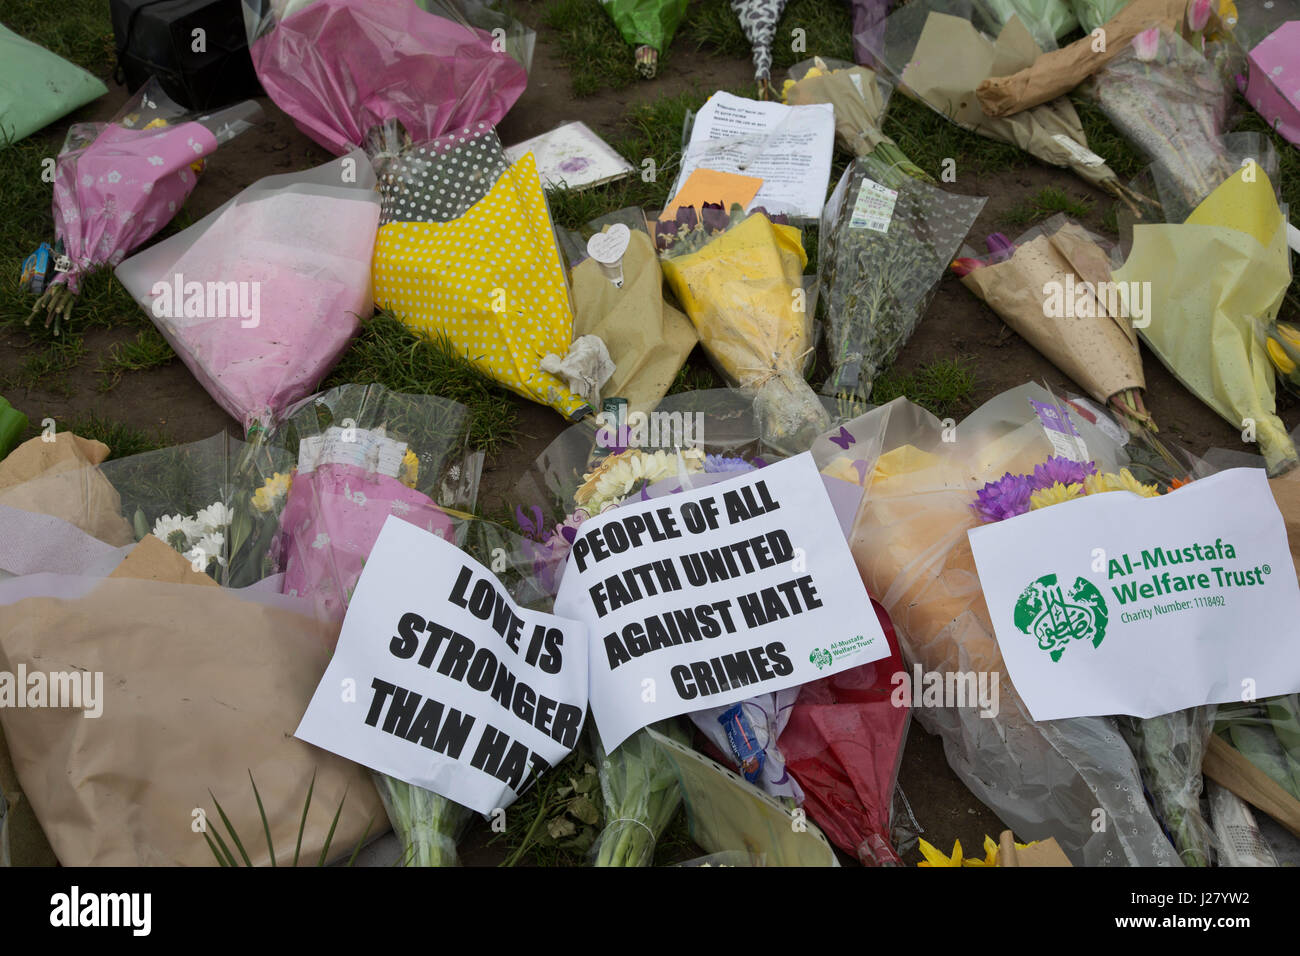 Memorial flowers and notices to PC Keith Palmer who was killed during the Westminster terror attack in London, England, - Stock Image